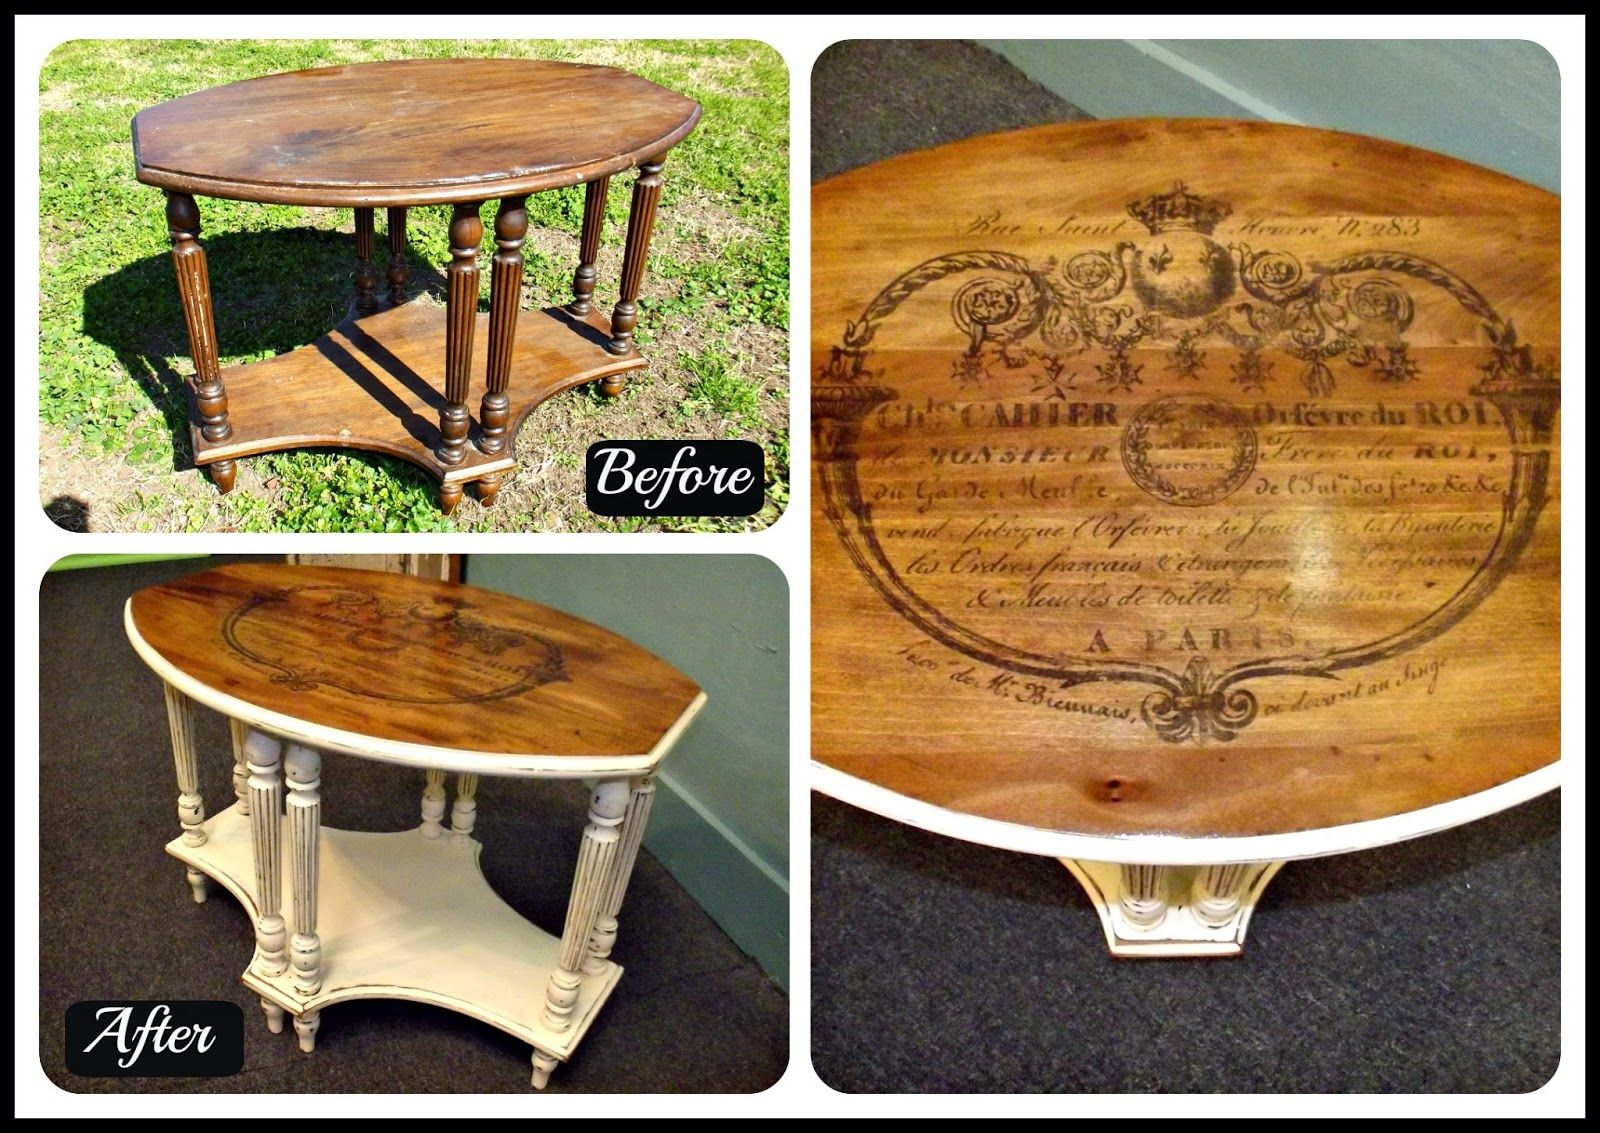 3 Spurz D C Repurpose Refurbish Creations How To Heat Transfer Onto Furniture Stained Table Painted Coffee Tables Furniture [ 1133 x 1600 Pixel ]